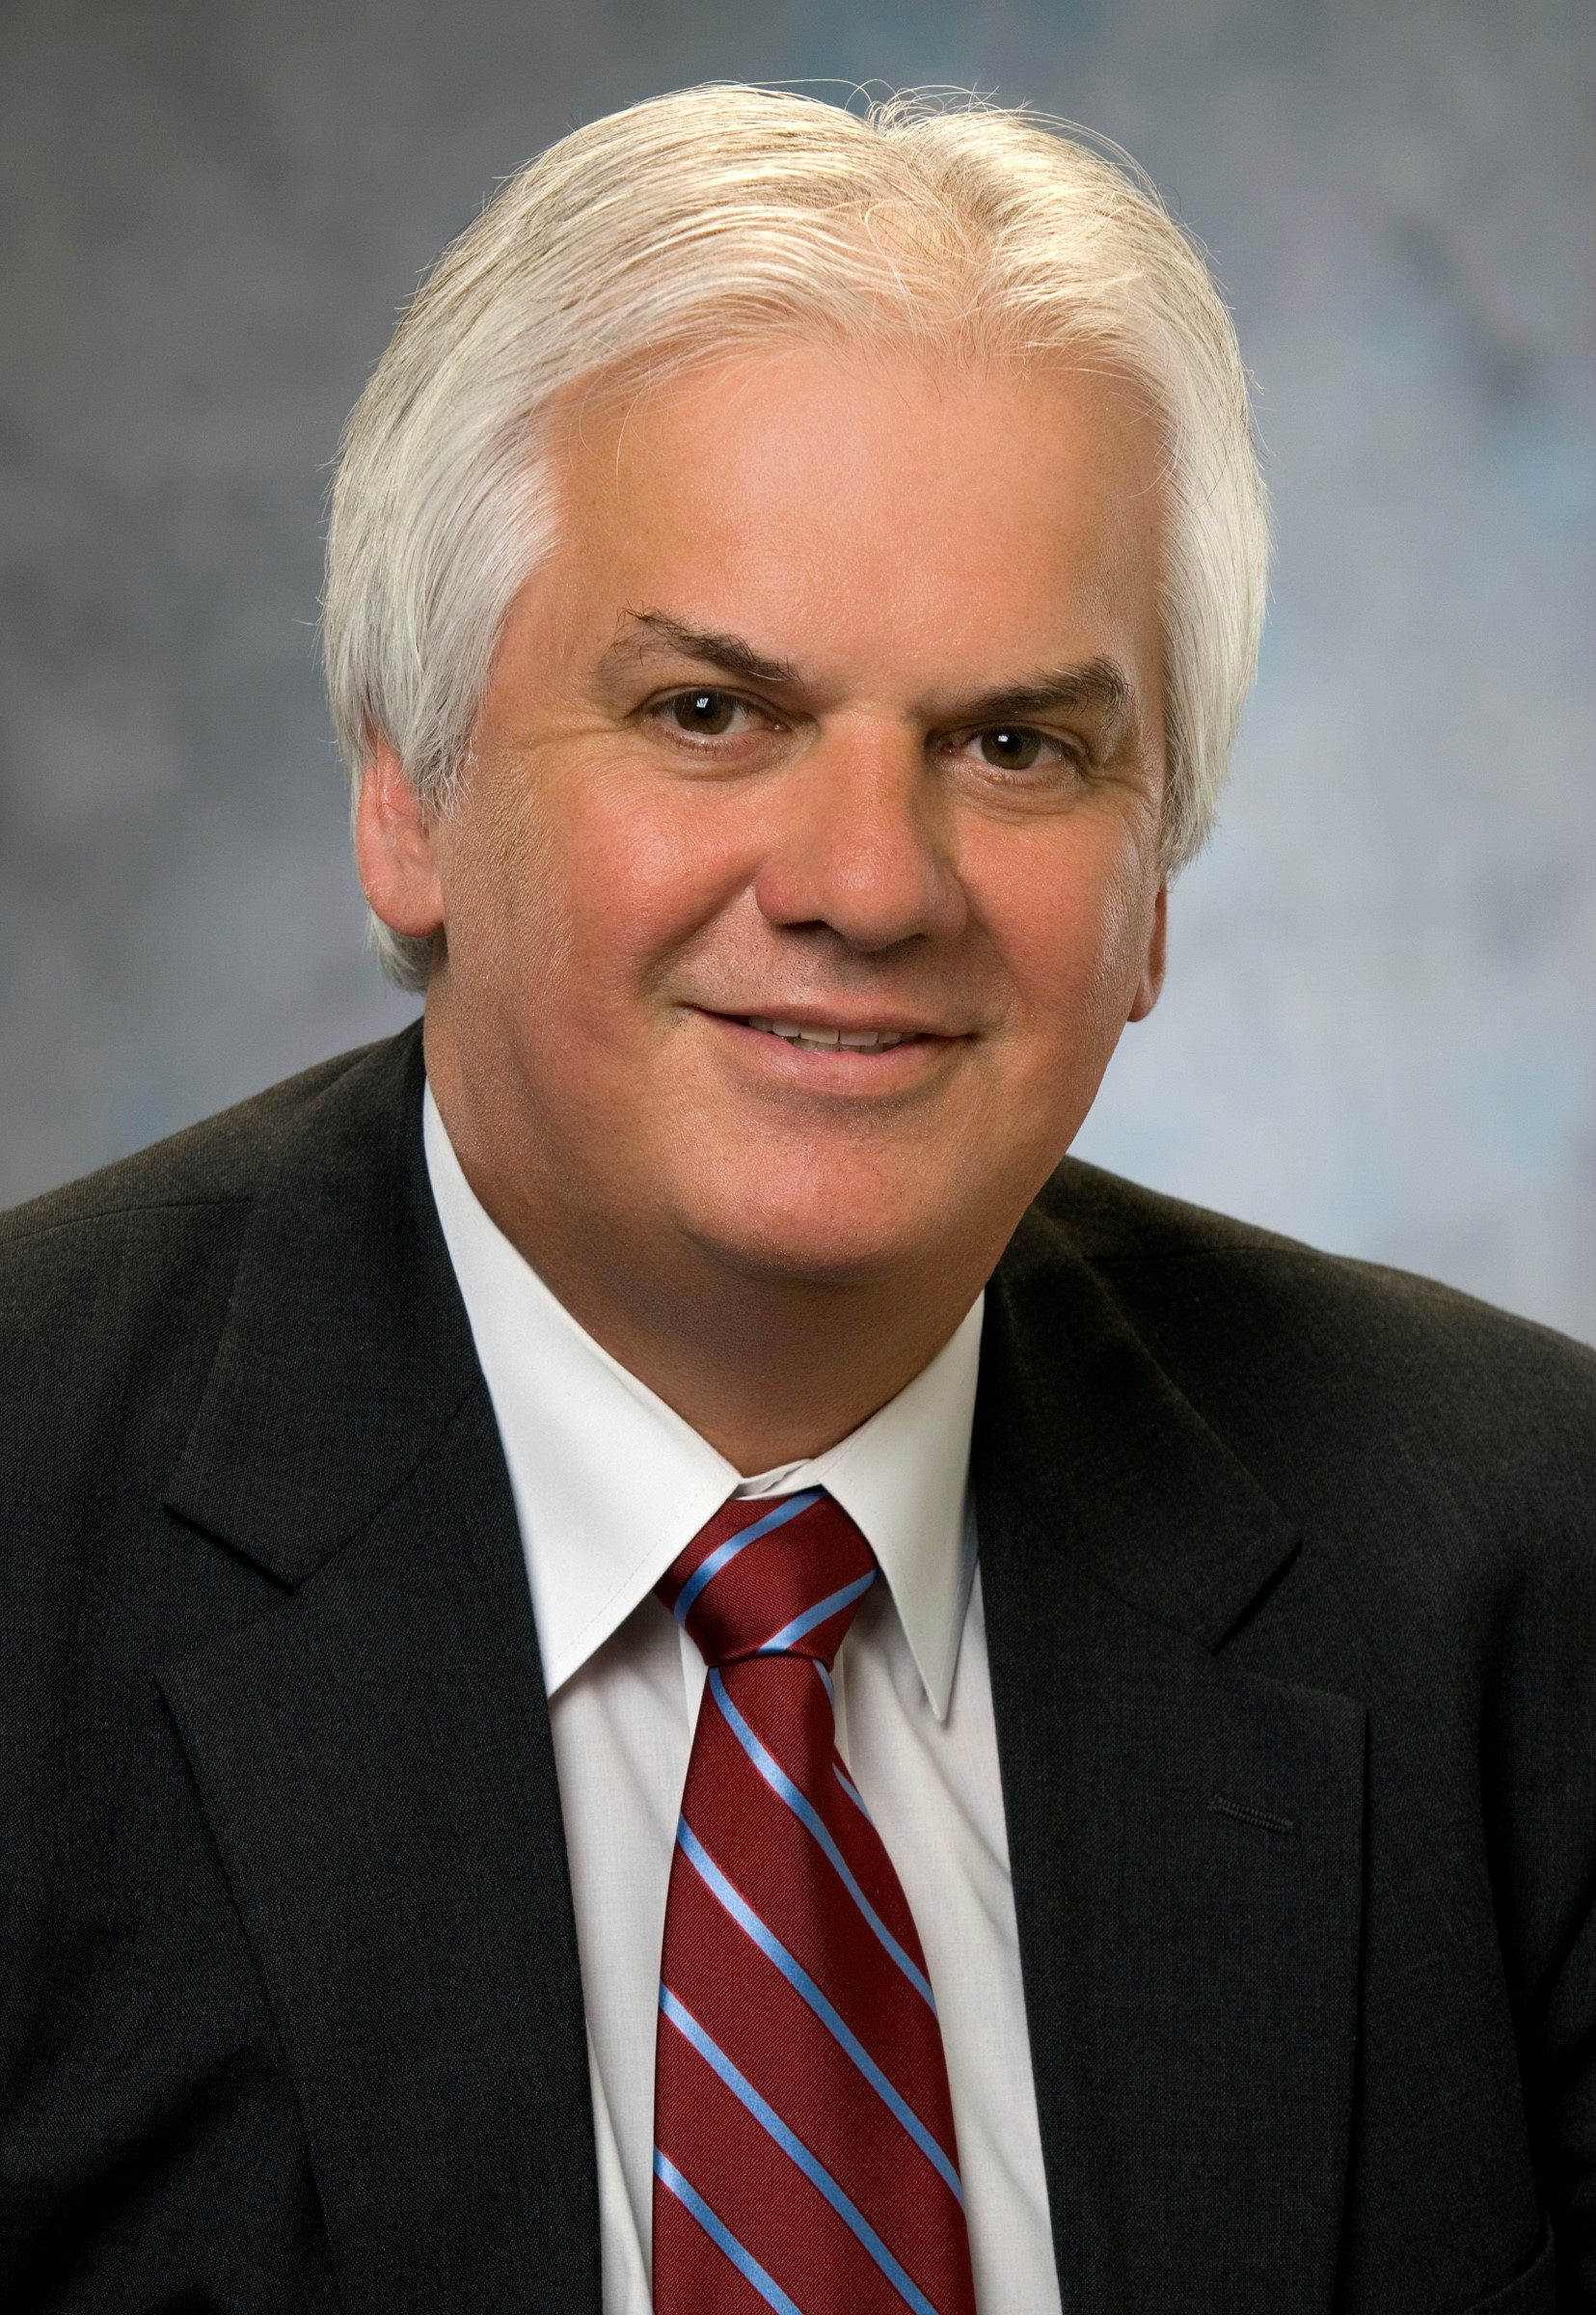 Barry Hale - Chief Operating Officer, emeritus